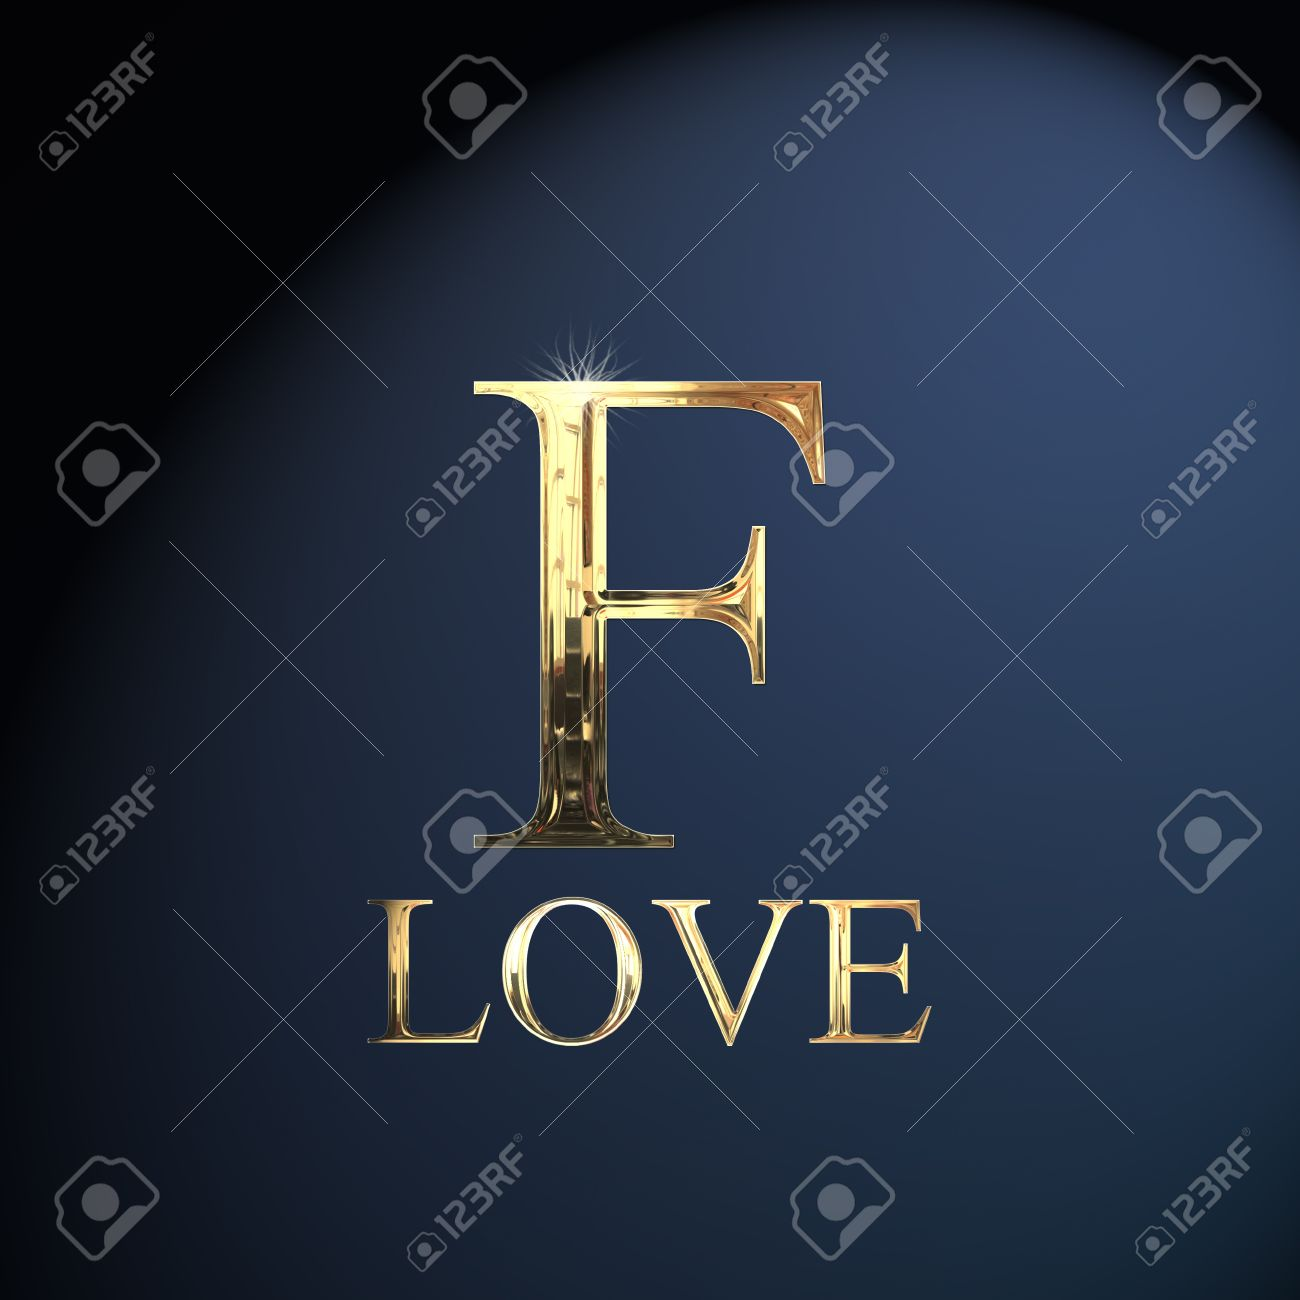 Download S Love F Wallpaper Gallery